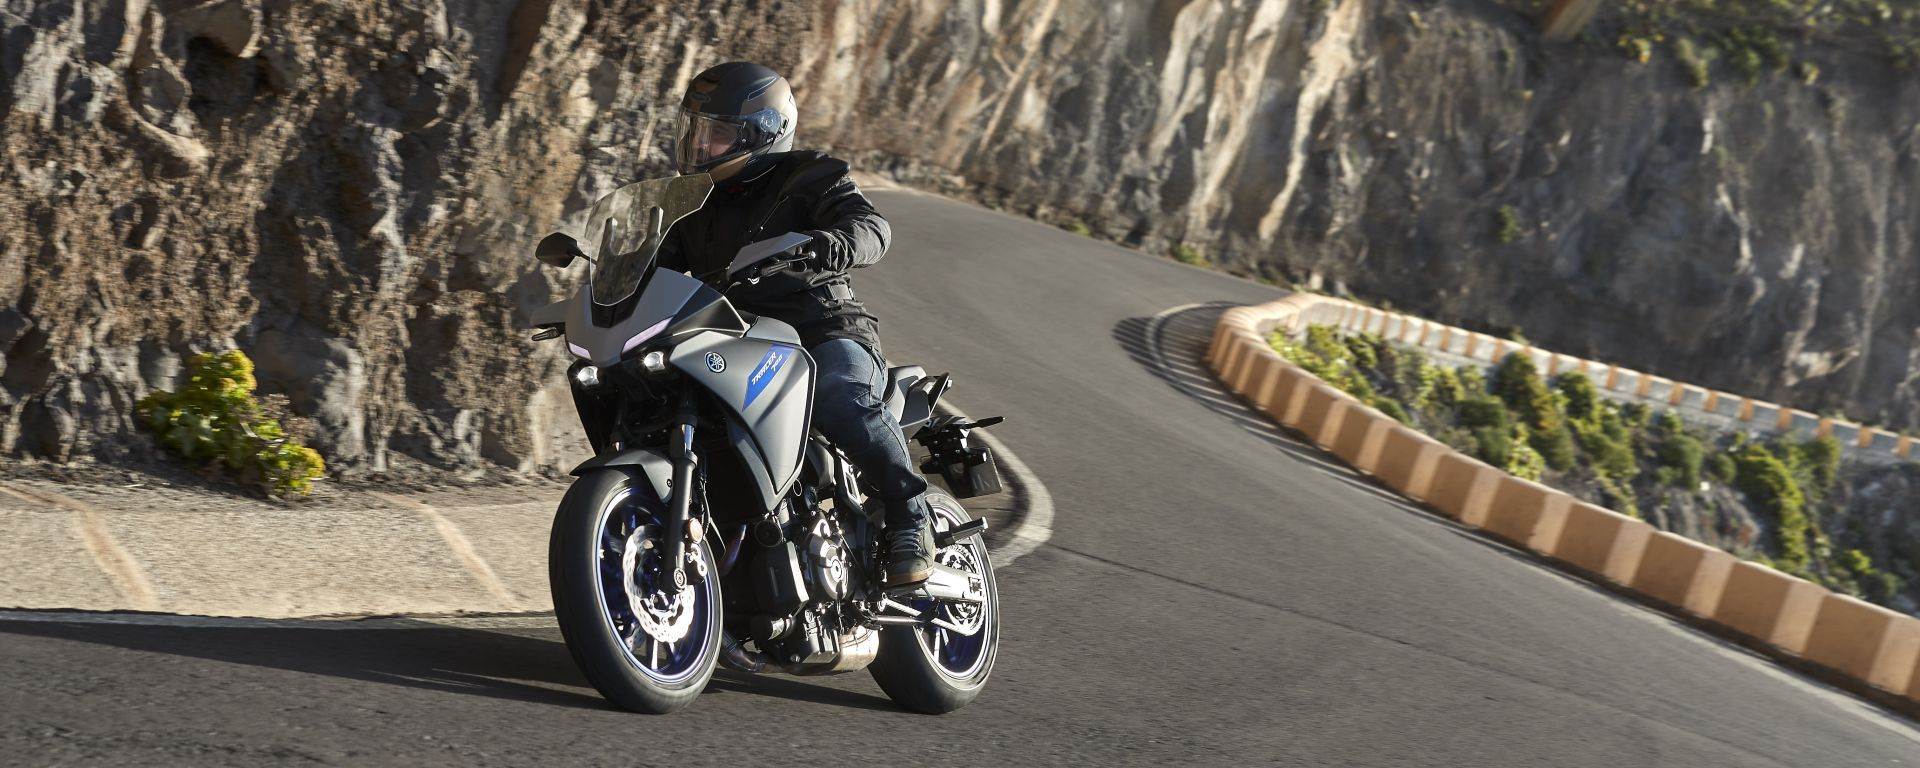 Yamaha Tracer 700 2020: in azione a Tenerife